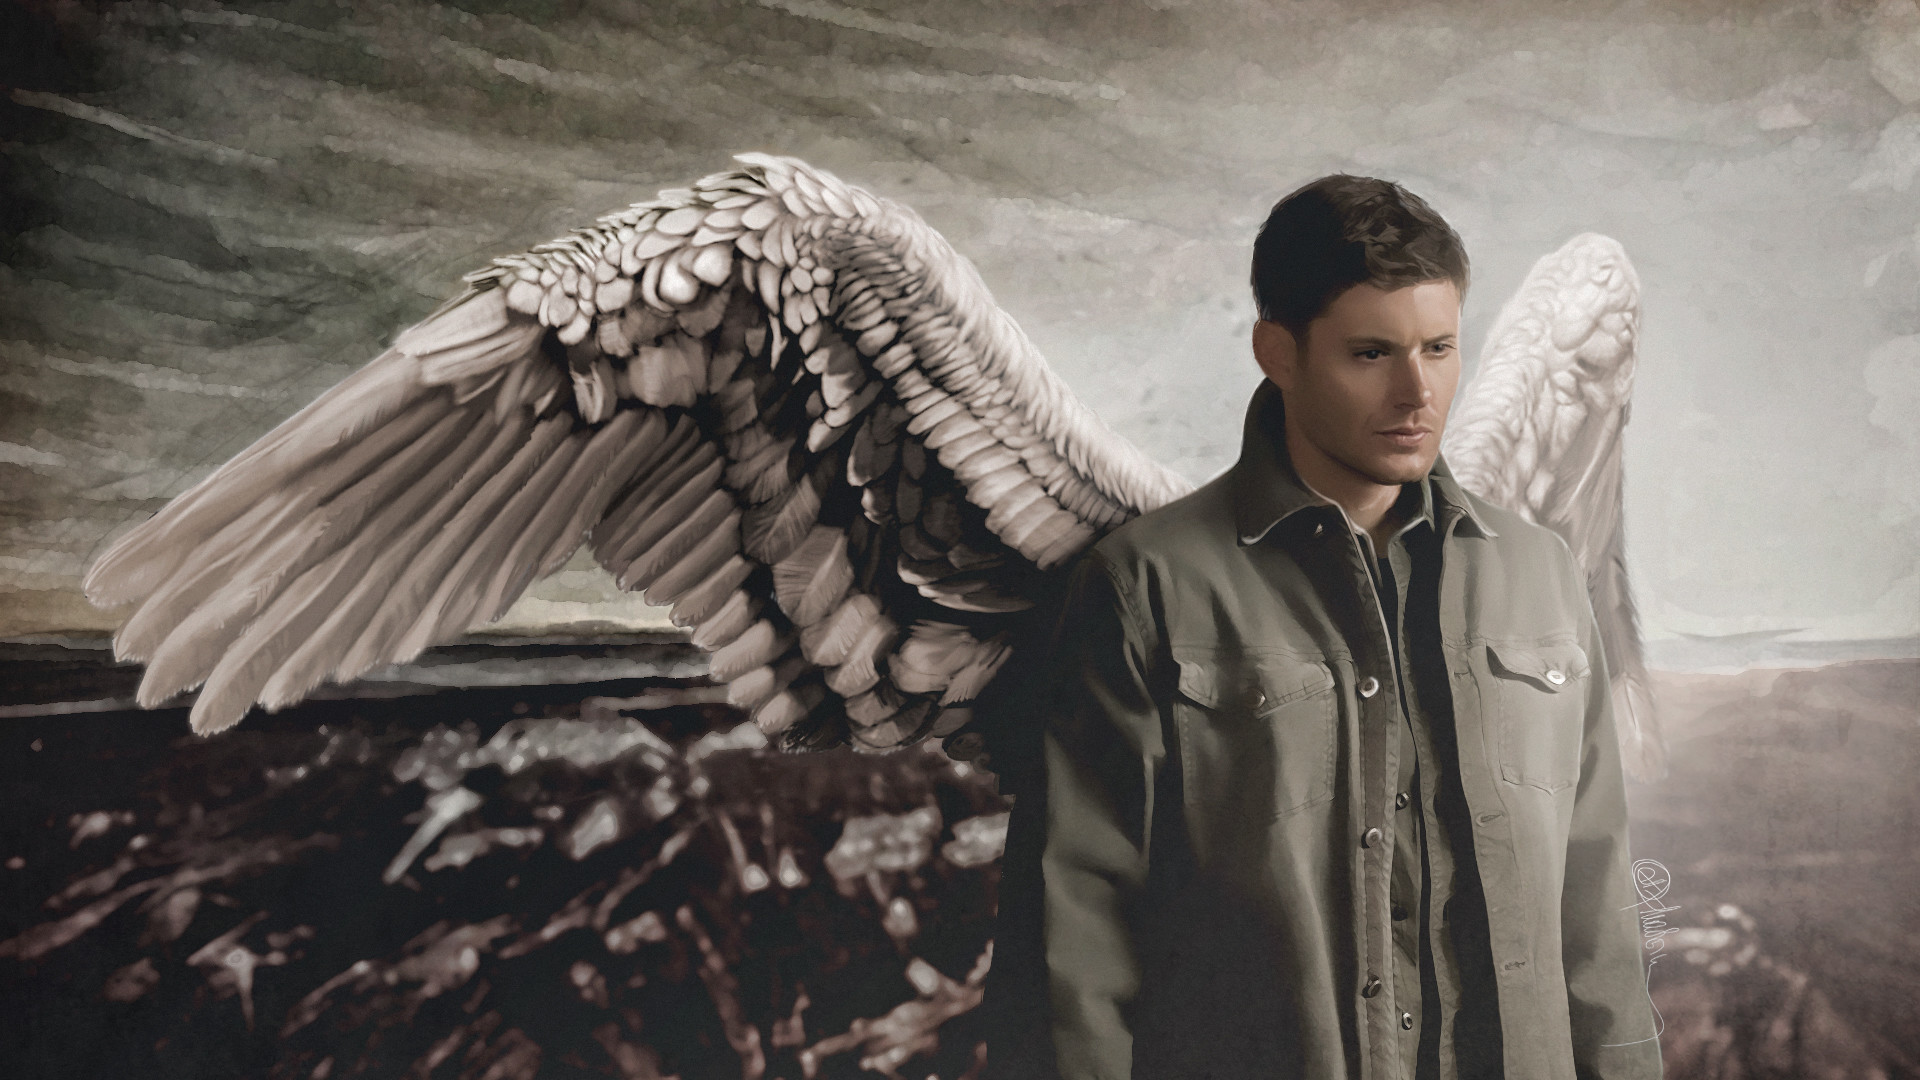 Supernatural Wallpaper 2018 79 images